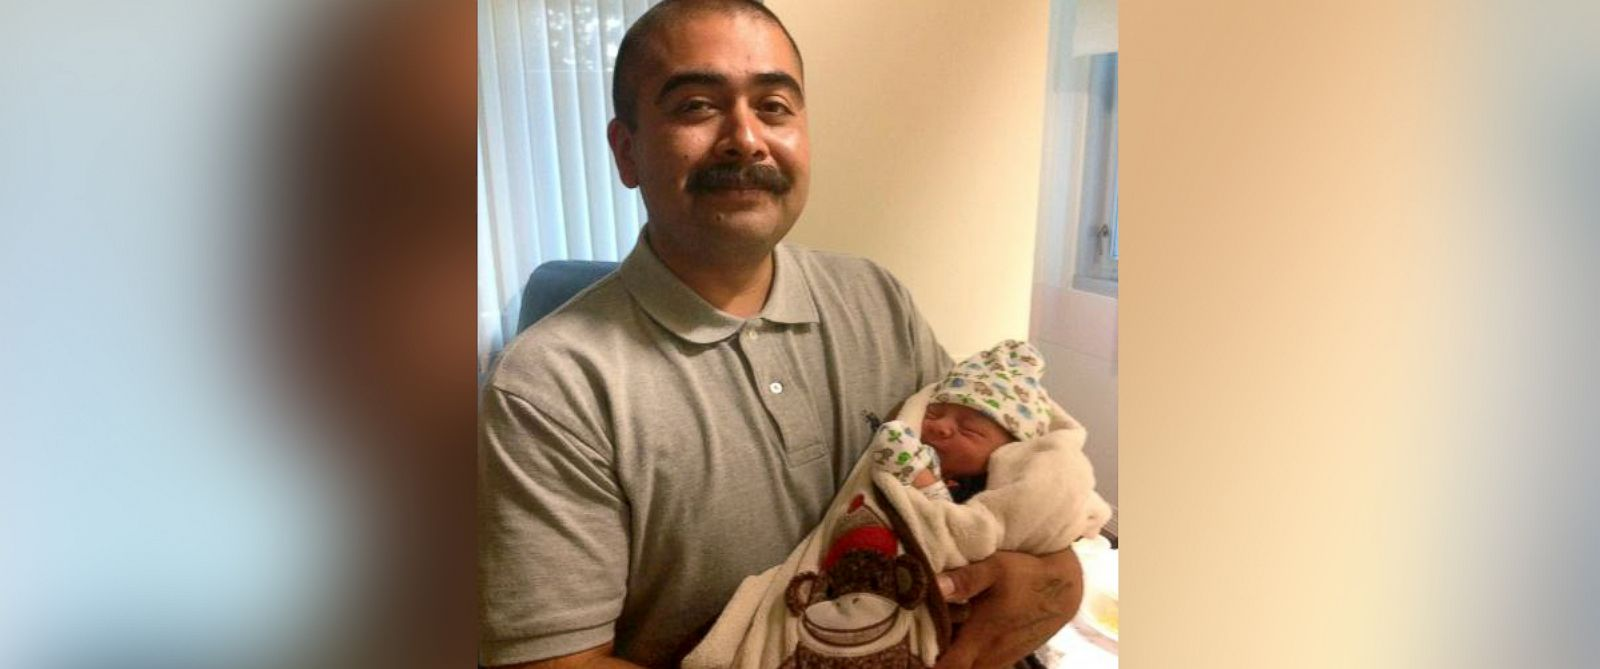 PHOTO: Angel Sanchez holds his newborn son Ismael Sanchez, who was born during a 6.0 earthquake that struck the Napa Valley area, at the Queen of the Valley Medical Center, Aug. 24, 2014.